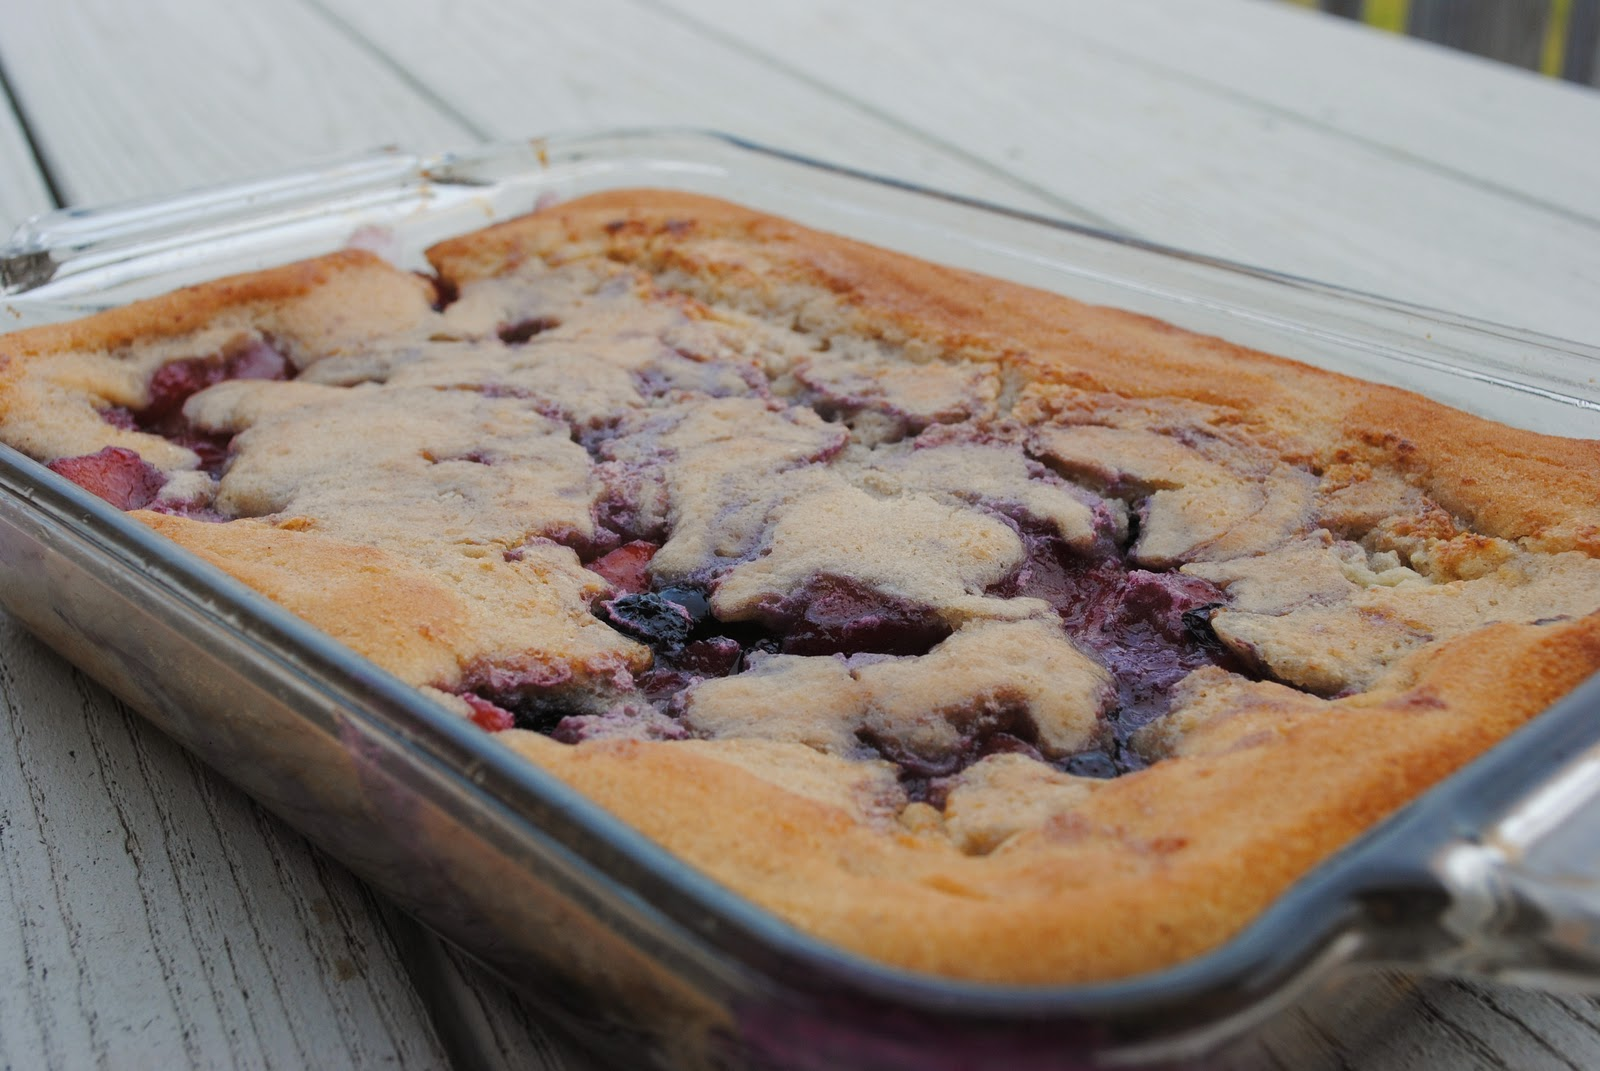 Homemade By Holman: Peach Blueberry Cobbler